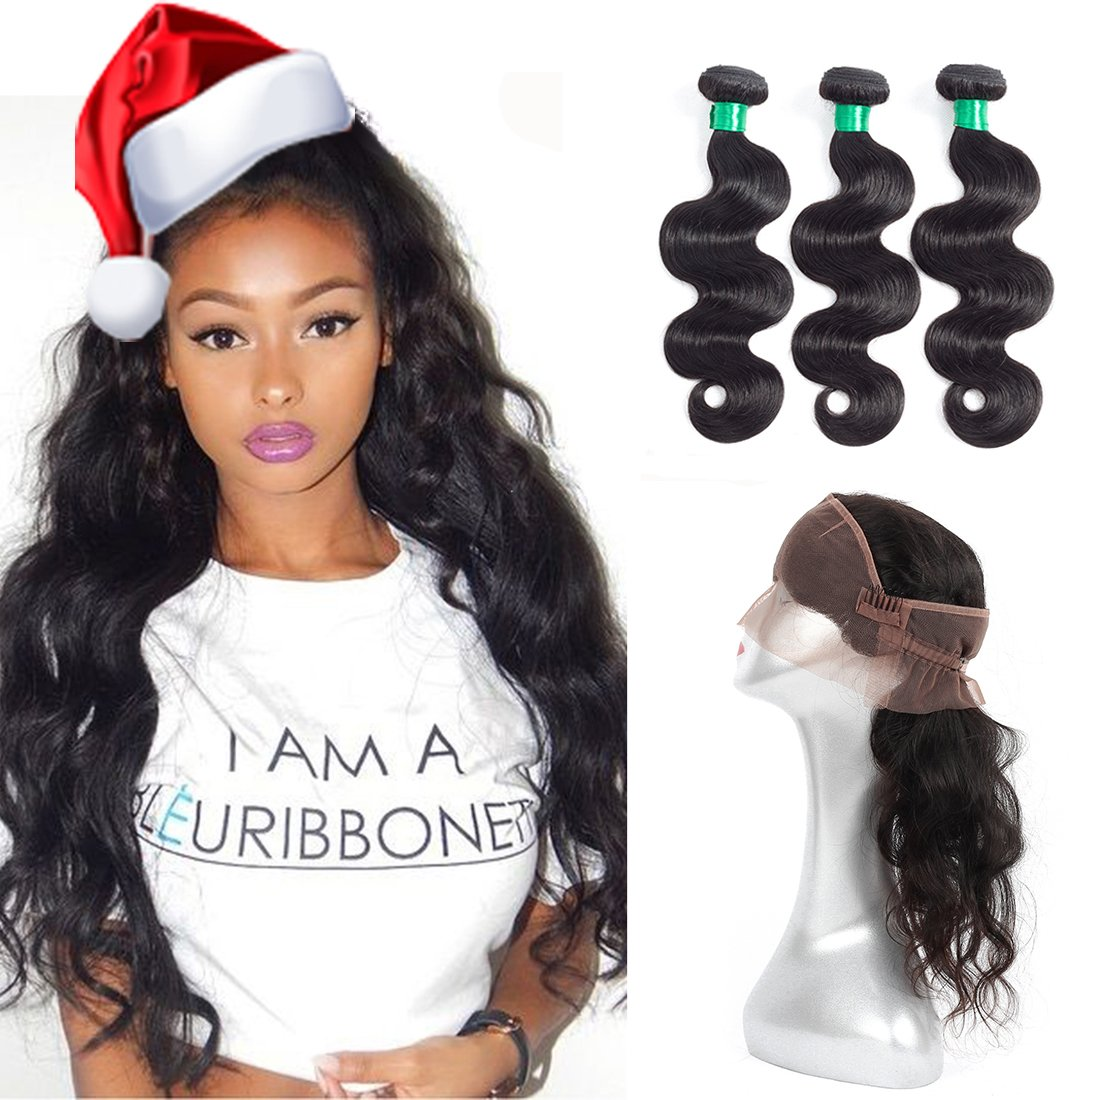 MQYQ 360 Lace Frontal Closure with Bundle Brazilian Body Wave Hair Weave Pre Plucked 360 Frontal with Human Hair 3 Bundles (14 16 18+14 inch)